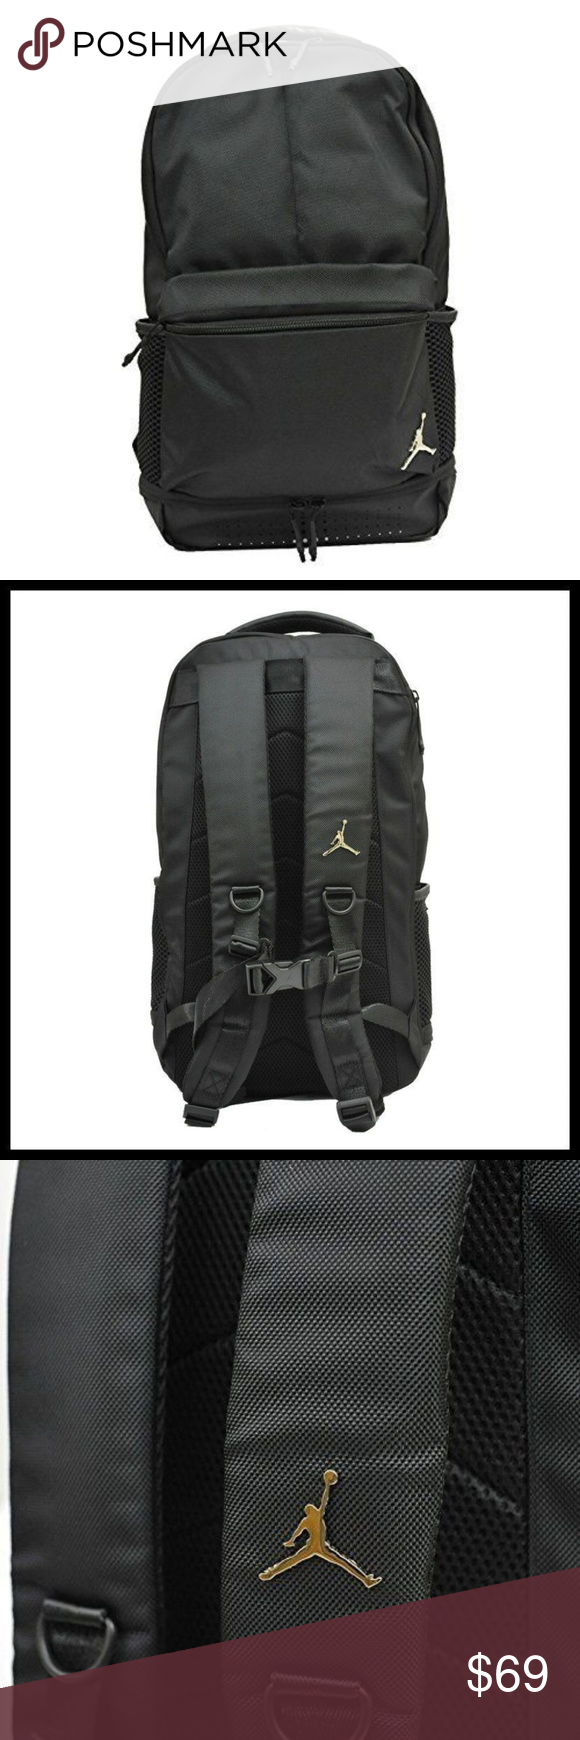 b78d42886db8e2 Nike Air Jordan Jumpman Black Silver Backpack NWT Buy from a Posh  Ambassador with over 1